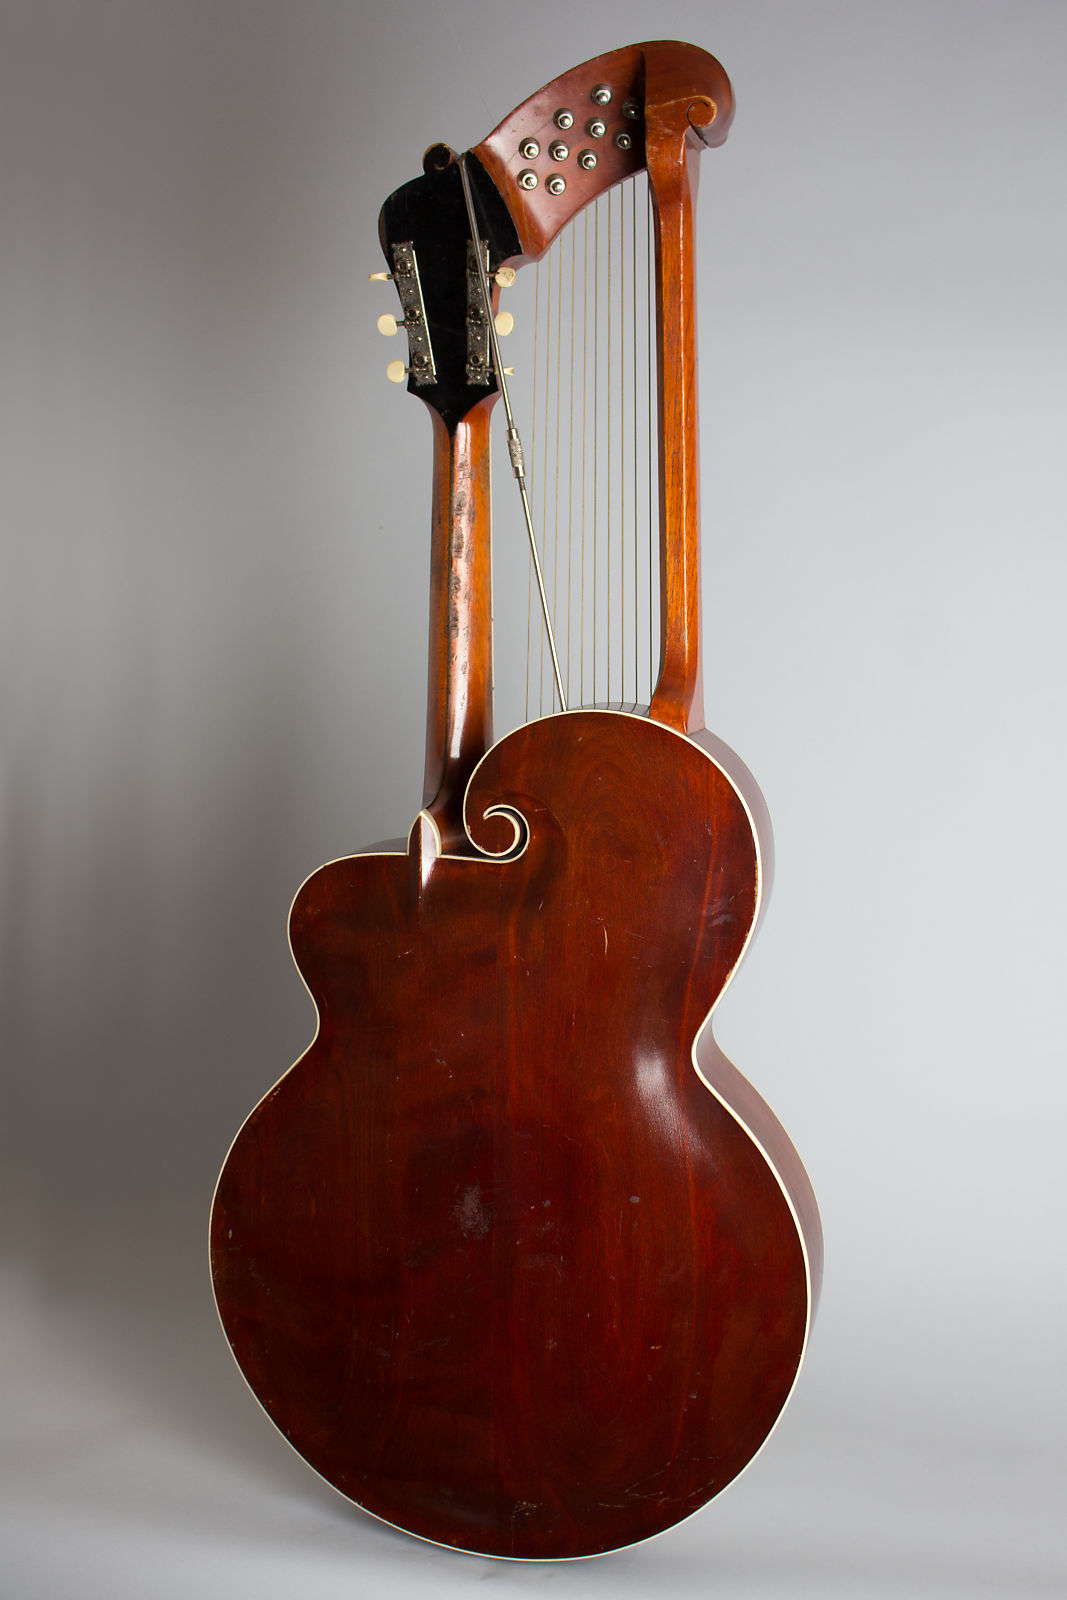 Gibson Style U Harp Guitar 1917 Sunburst top, cherry stained back and sides, original case.